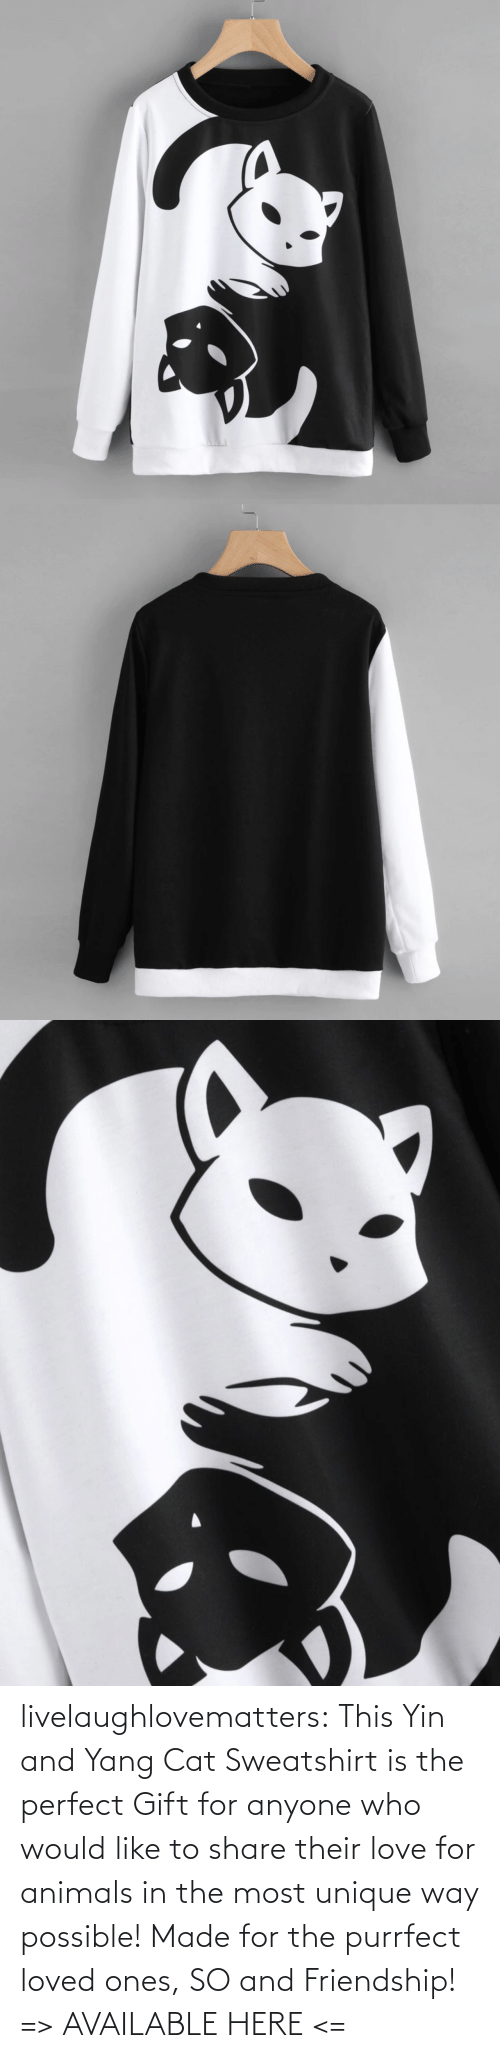 Who Would: livelaughlovematters:  This Yin and Yang Cat Sweatshirt is the perfect Gift for anyone who would like to share their love for animals in the most unique way possible! Made for the purrfect loved ones, SO and Friendship! => AVAILABLE HERE <=